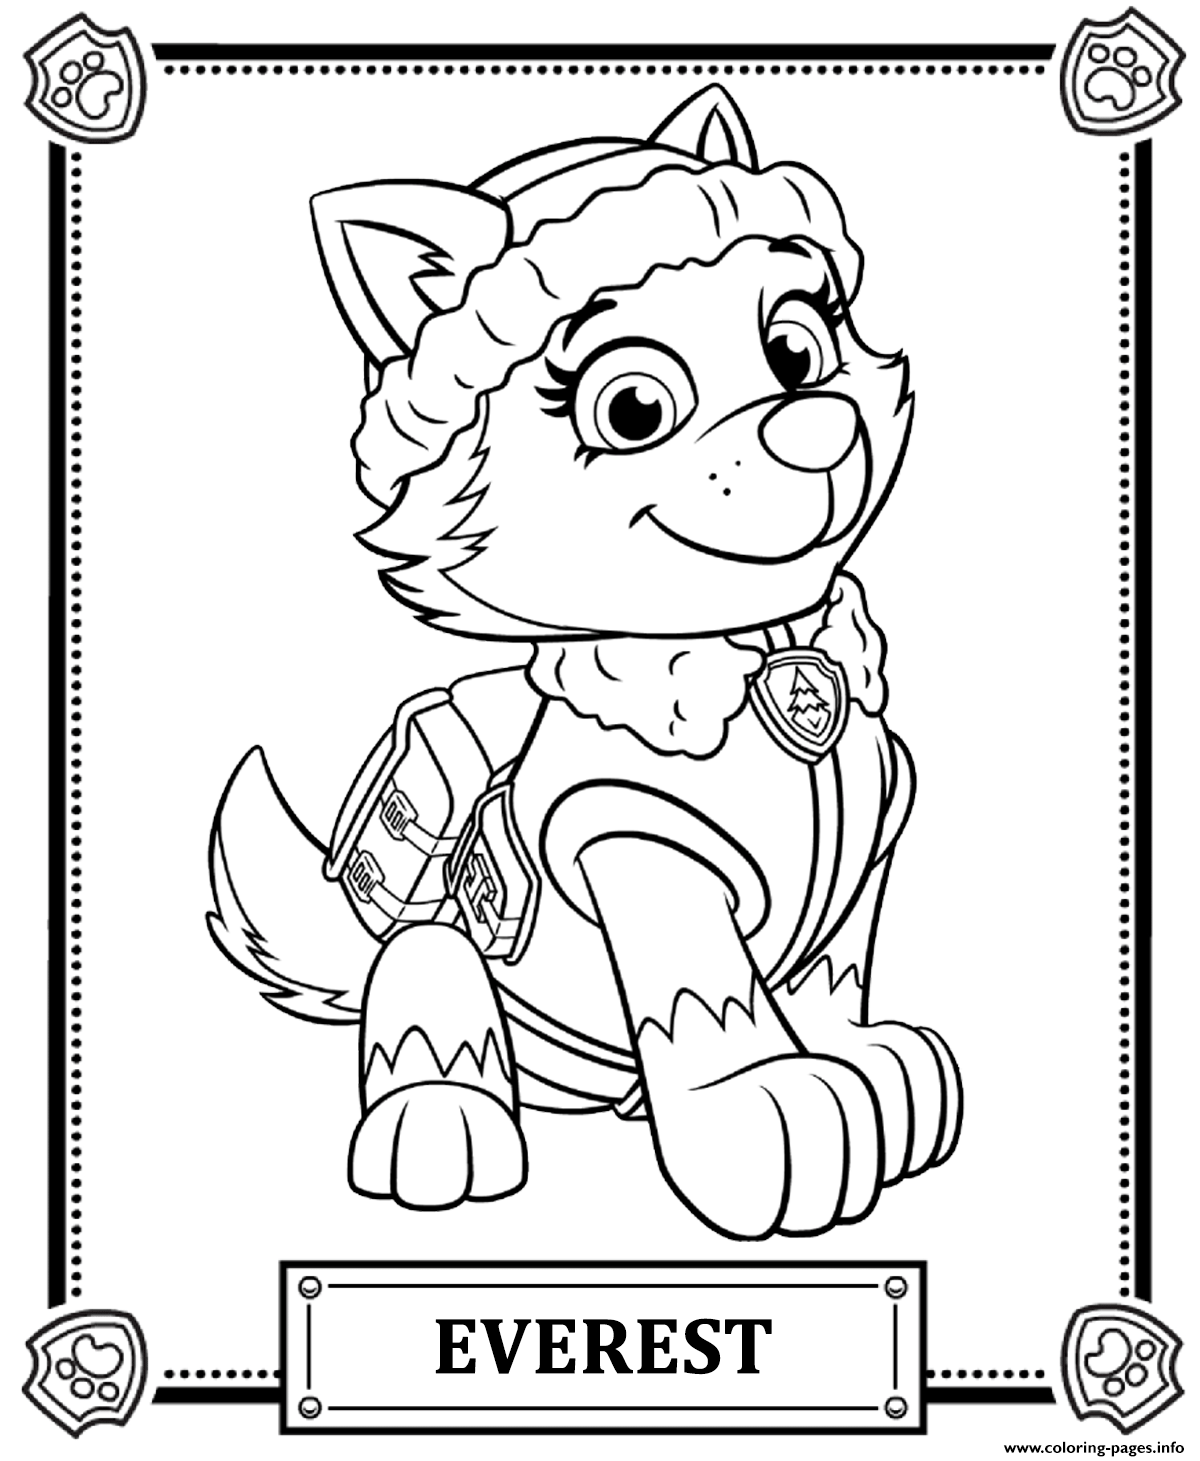 Coloring Pages Of Paw Patrol : Print paw patrol everest coloring pages